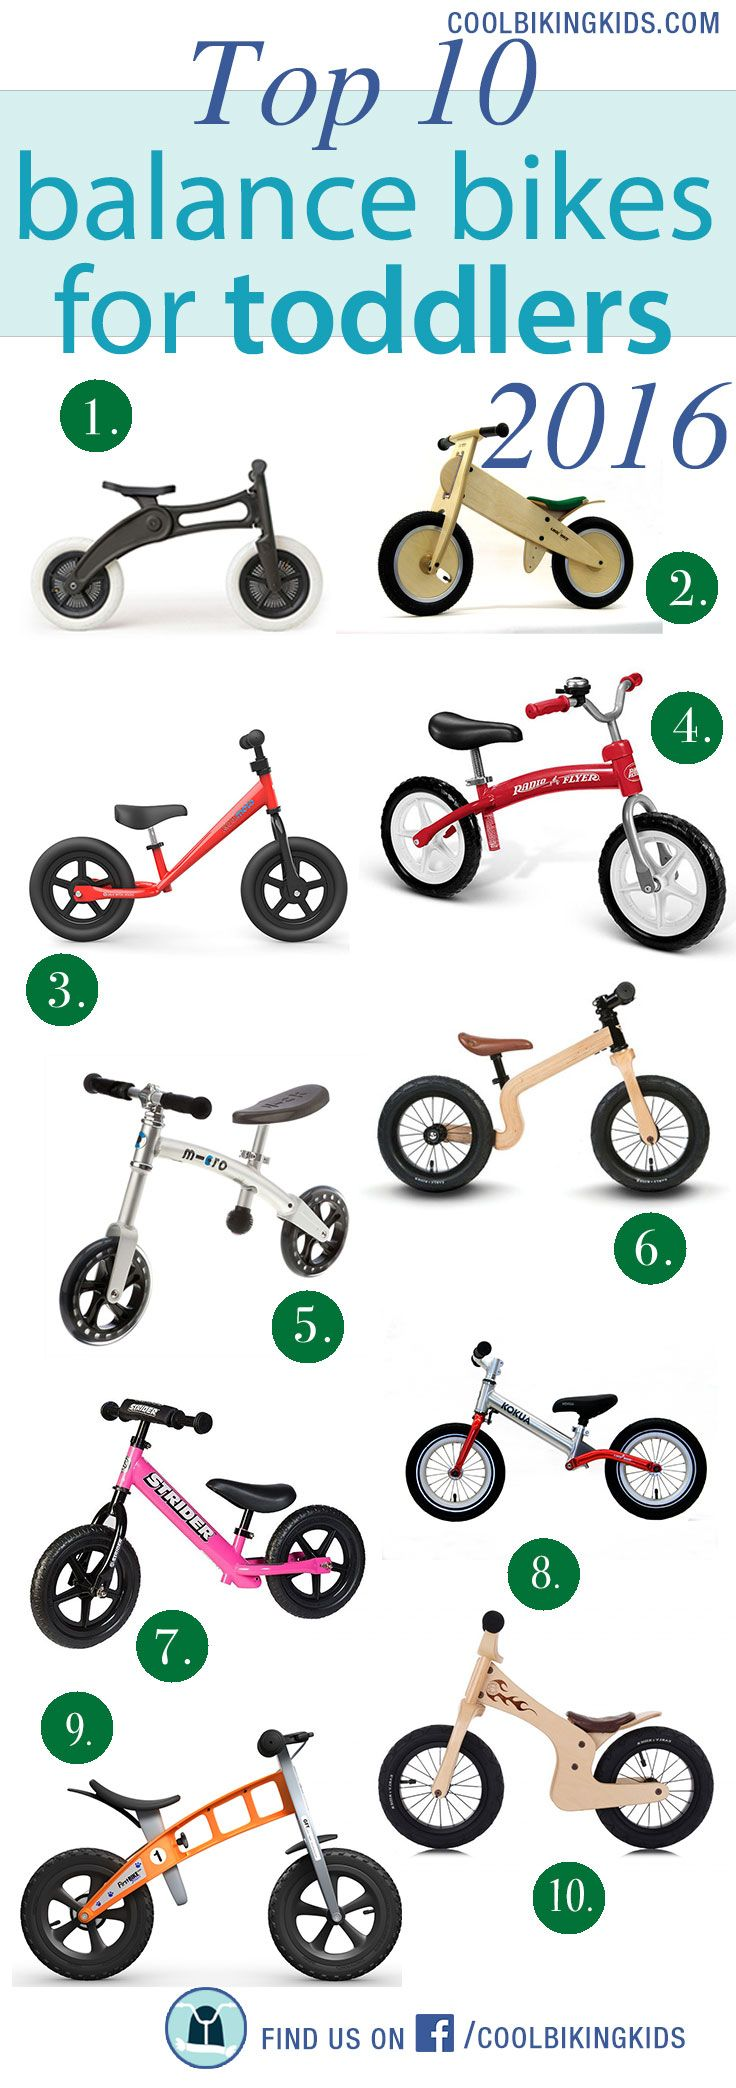 Top 10 Balance Bikes For Toddlers Is A Compilation Of 10 Balance